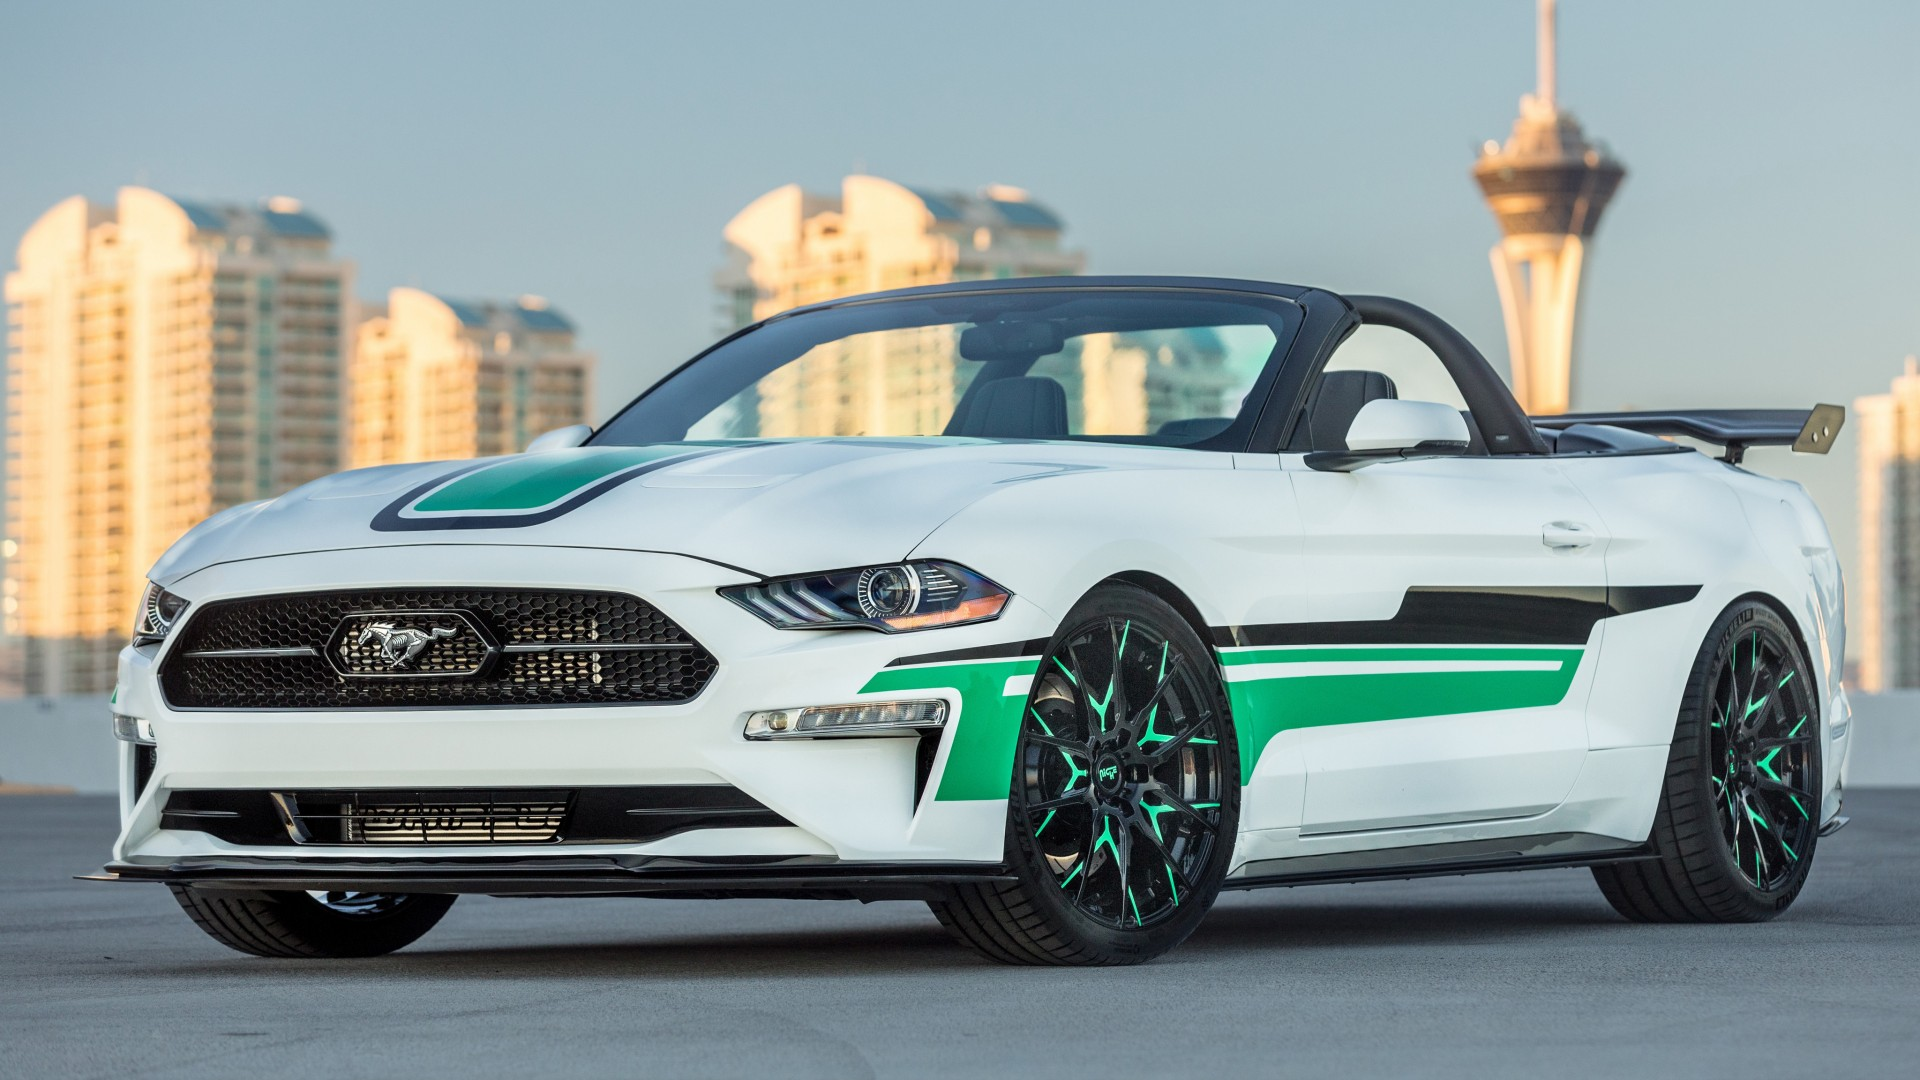 mustang 4k ford convertible custom paint green hd industries mad mustangs wallpapers sema drag 1920 1080 ride wing exterior resolutions